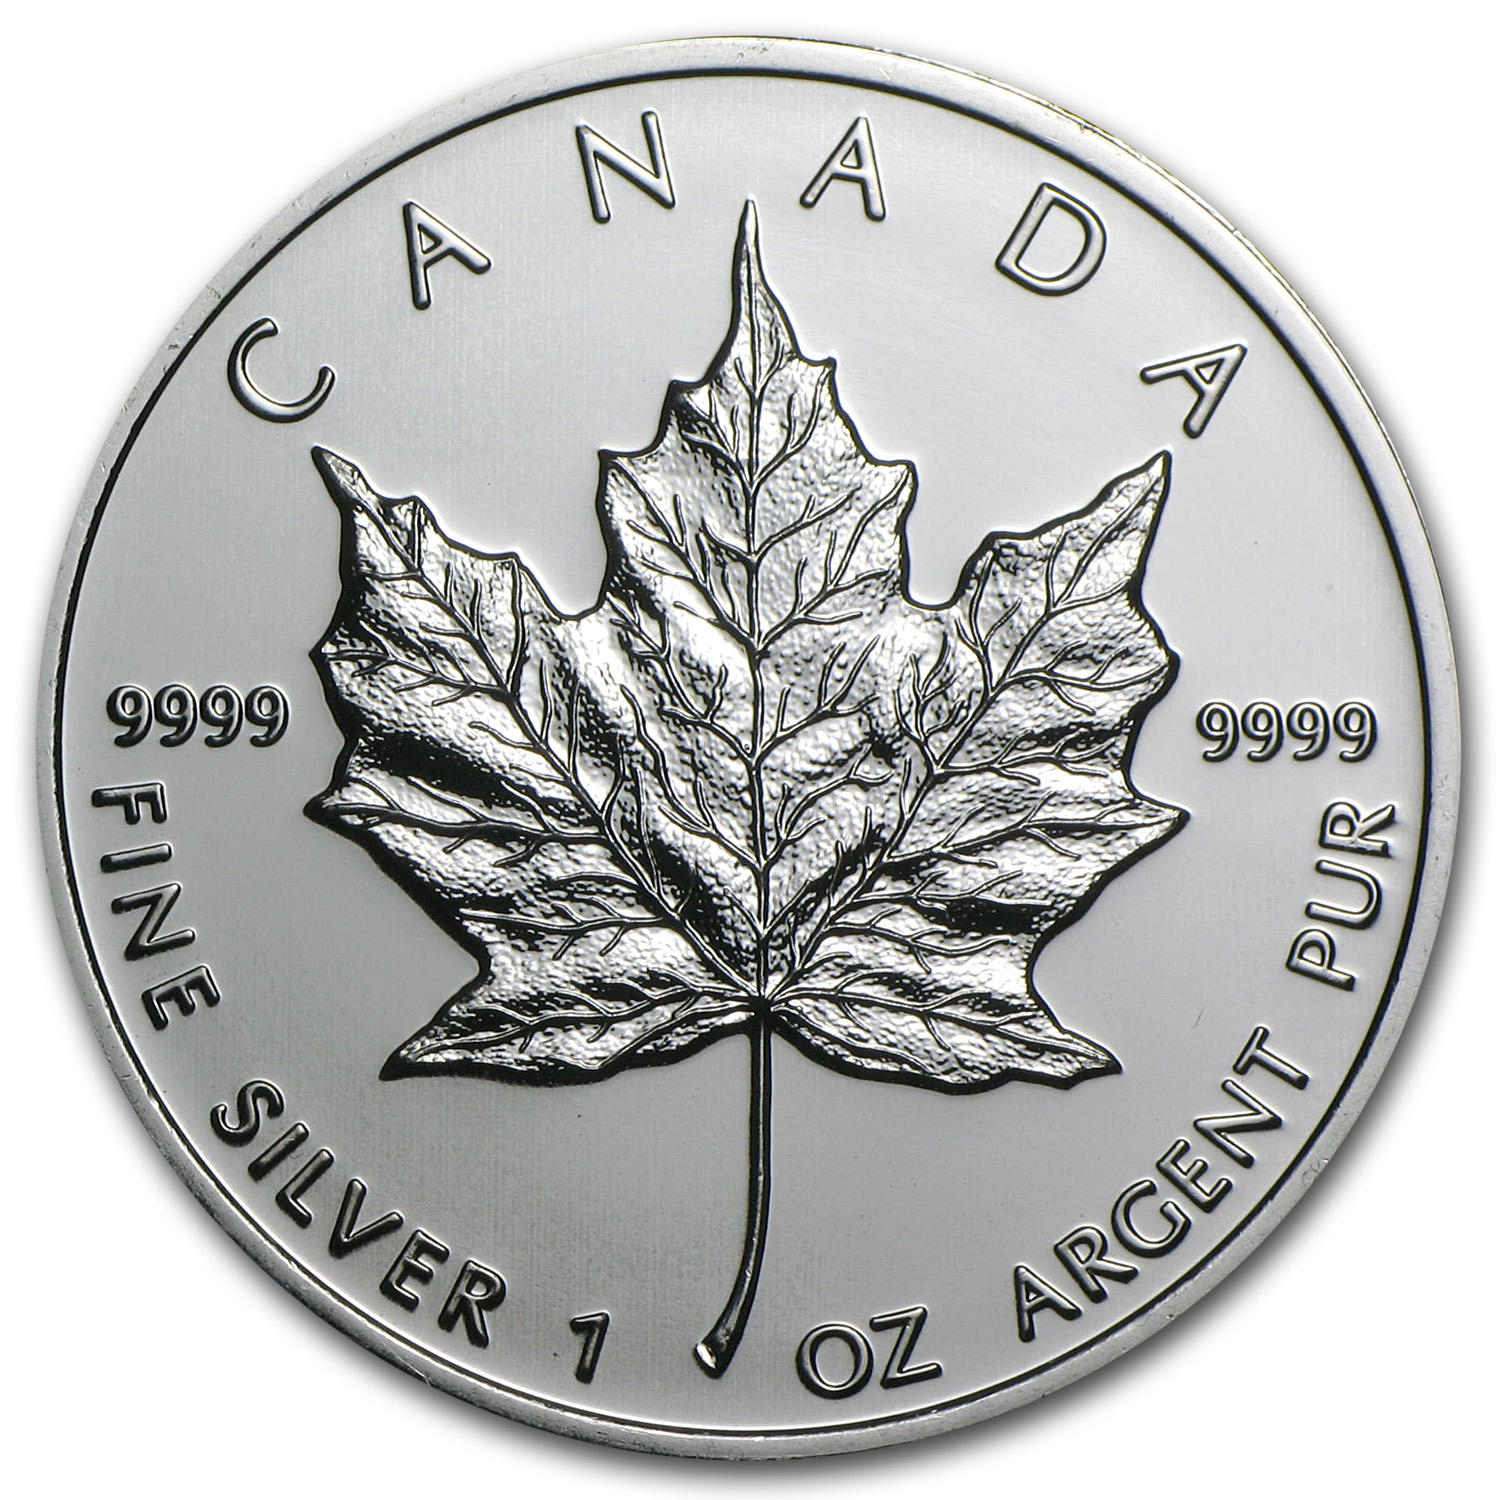 2009 Canada 1 Oz Silver Maple Leaf Bu Silver Maple Leafs